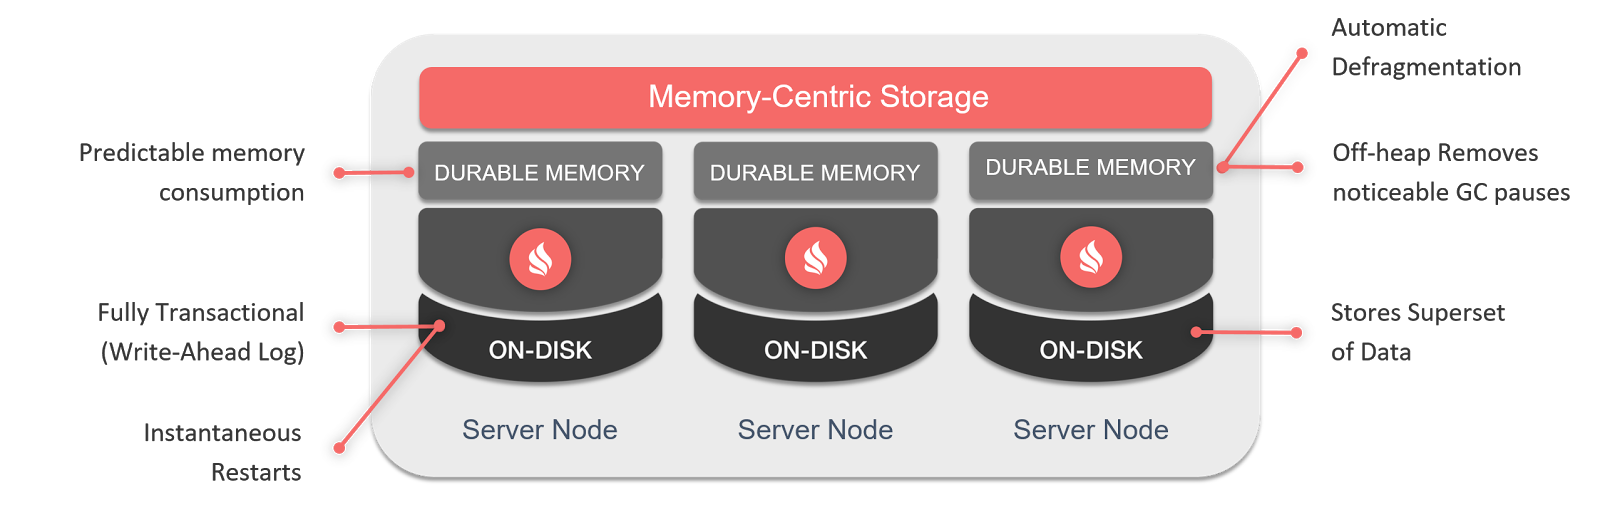 Apache Ignite - In Memory Performance with Durability of